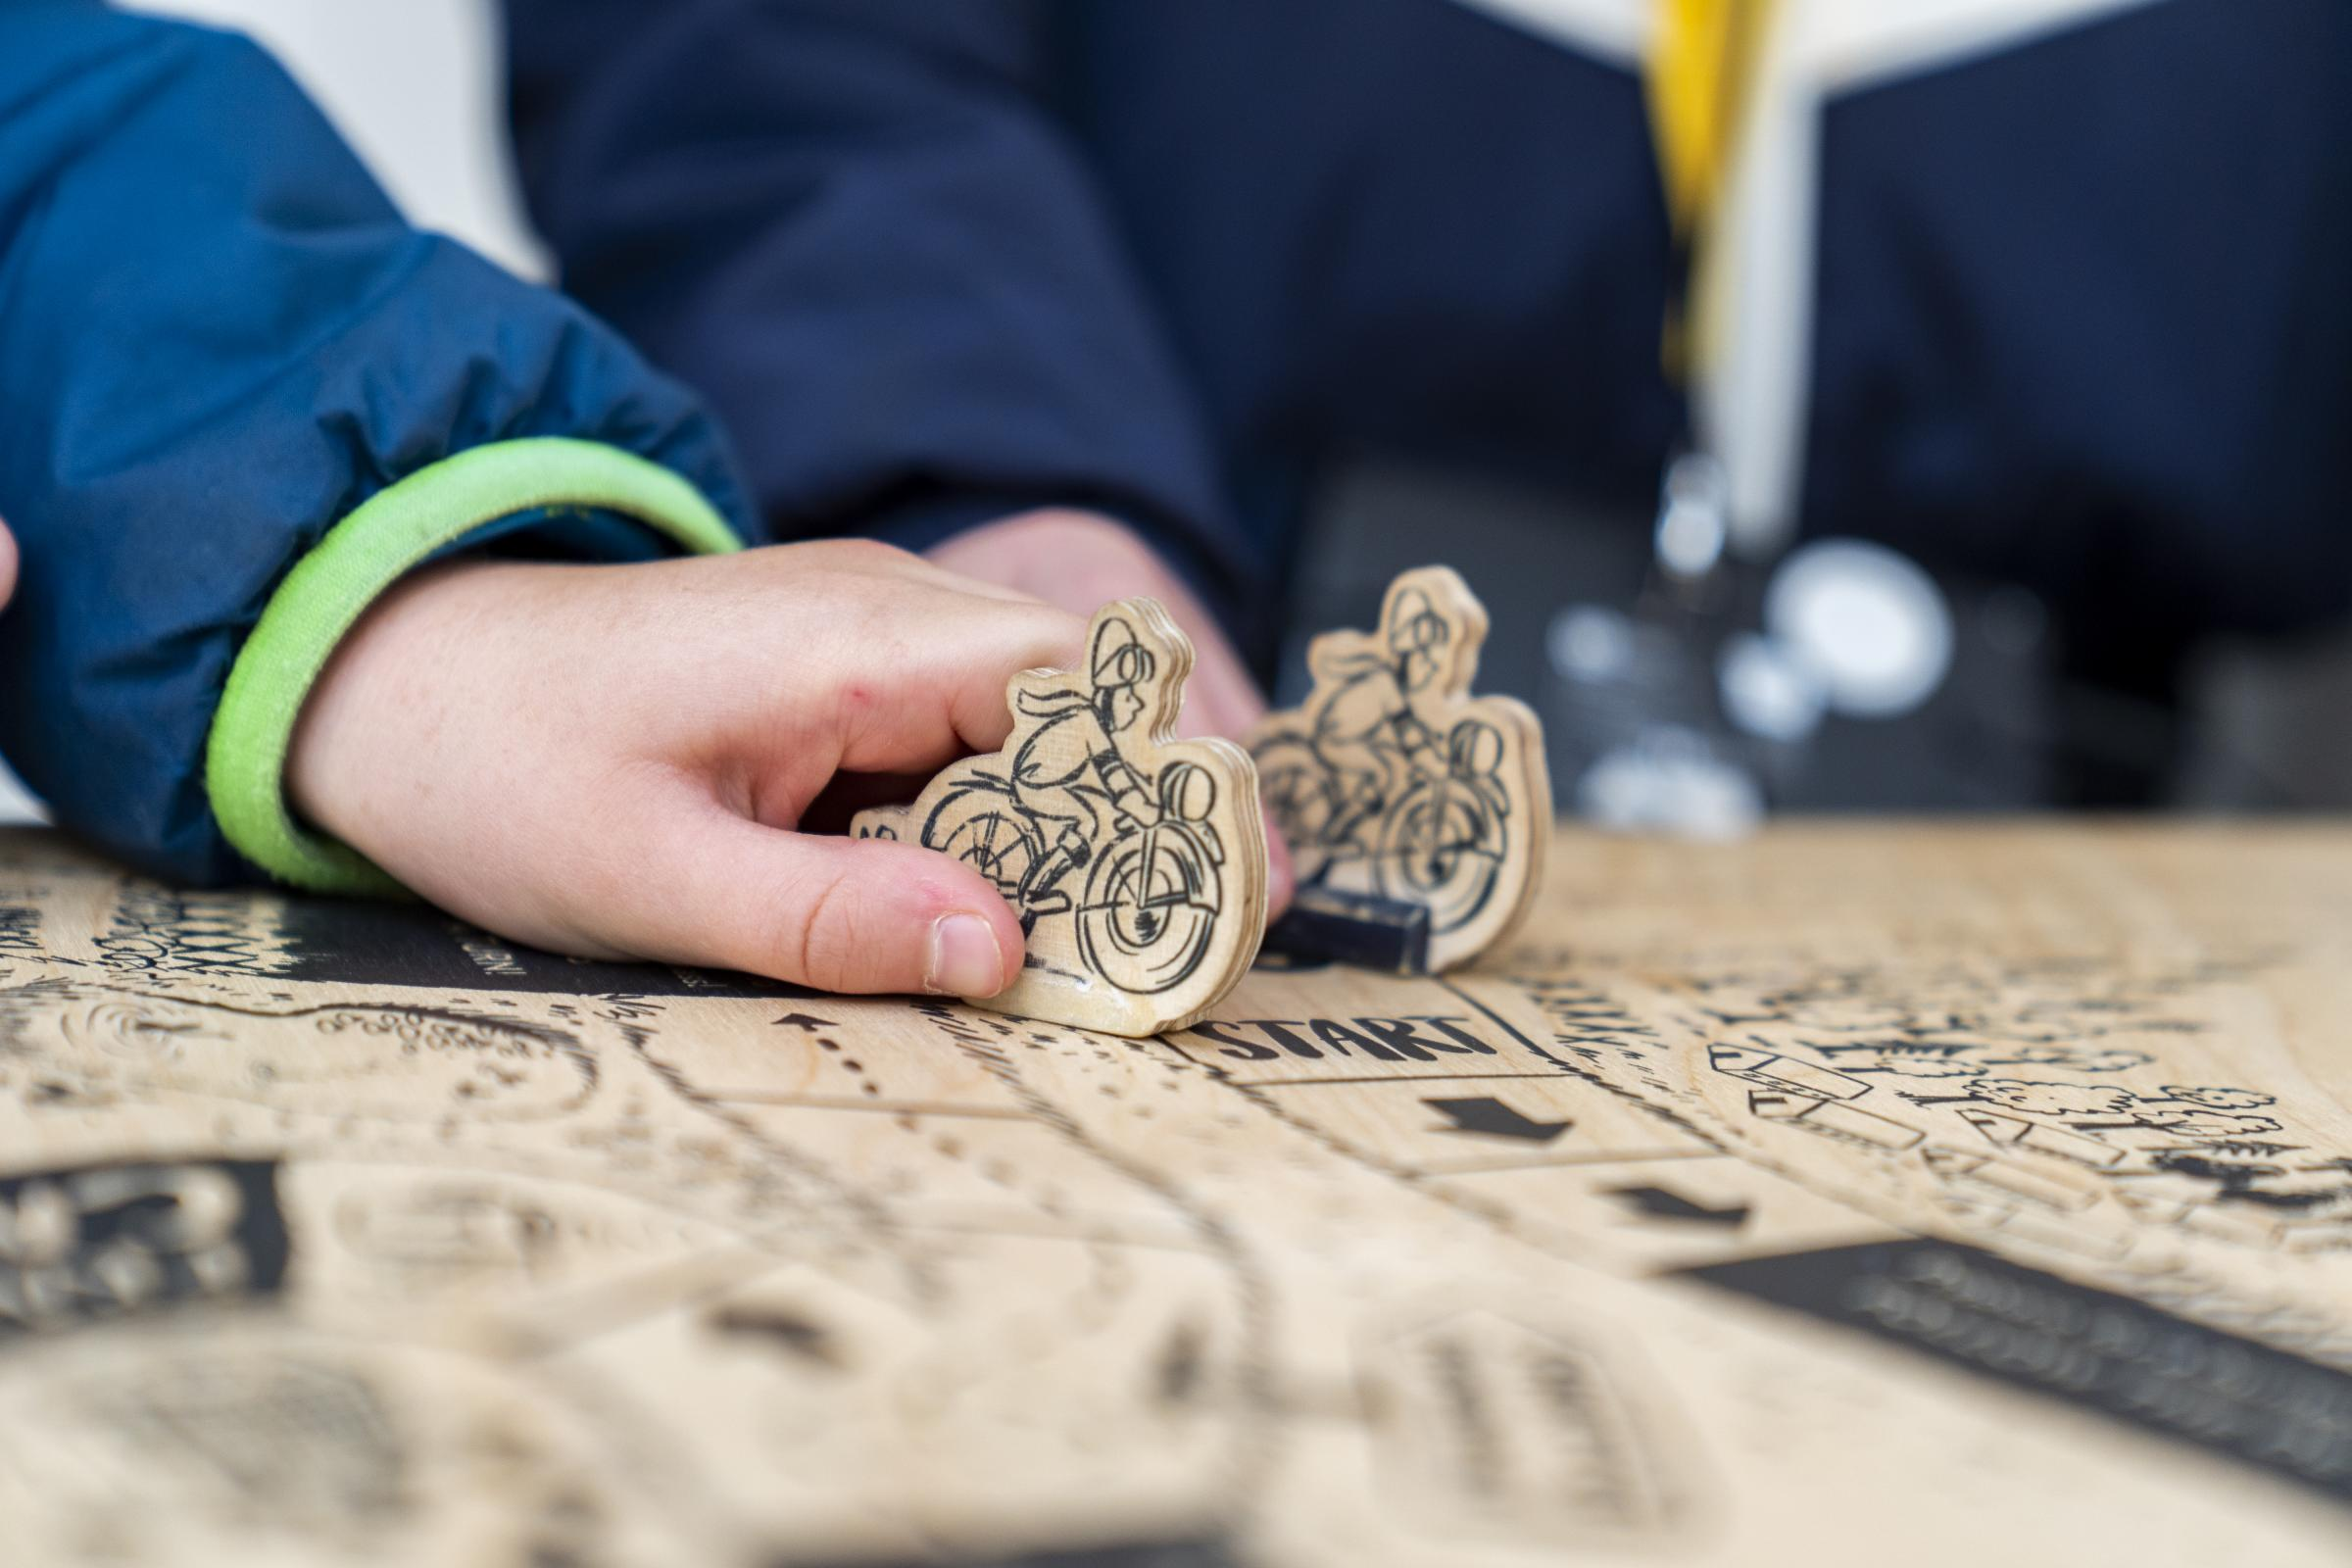 Easter Holidays at Bletchley Park